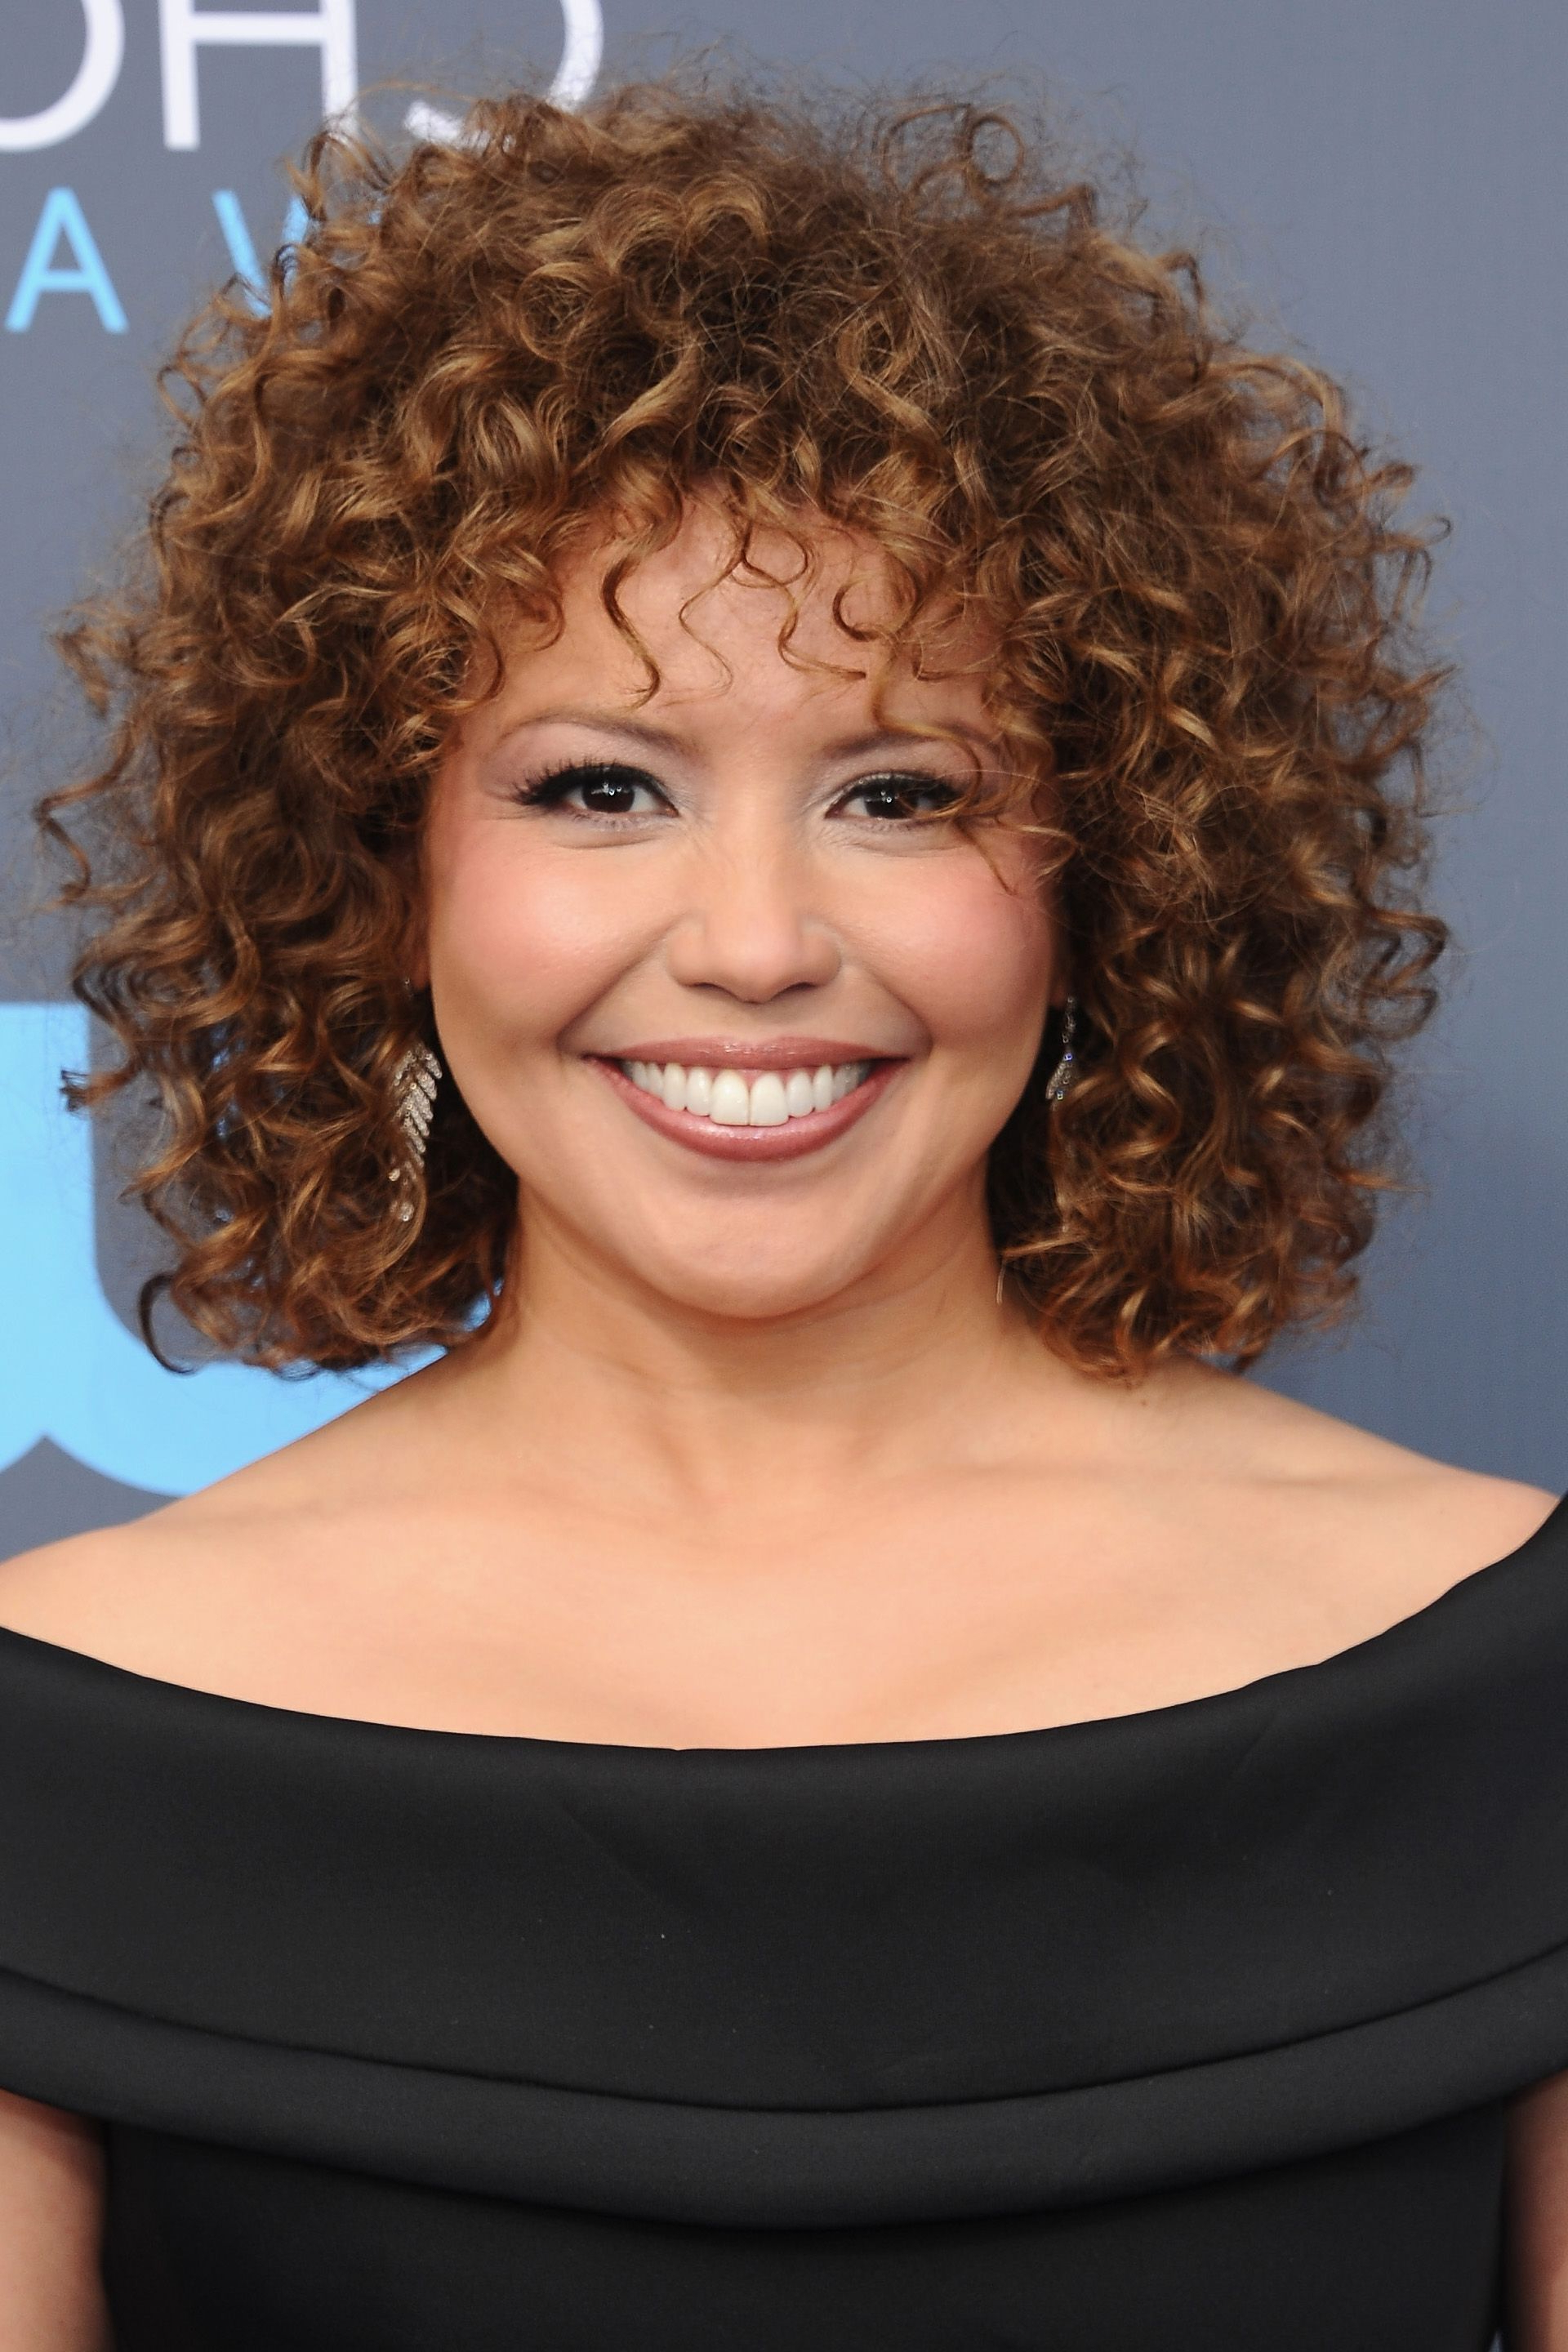 20 Celebrity Short Curly Hair Ideas – Short Haircuts And Hairstyles With Short Black Hairstyles With Tousled Curls (View 3 of 20)